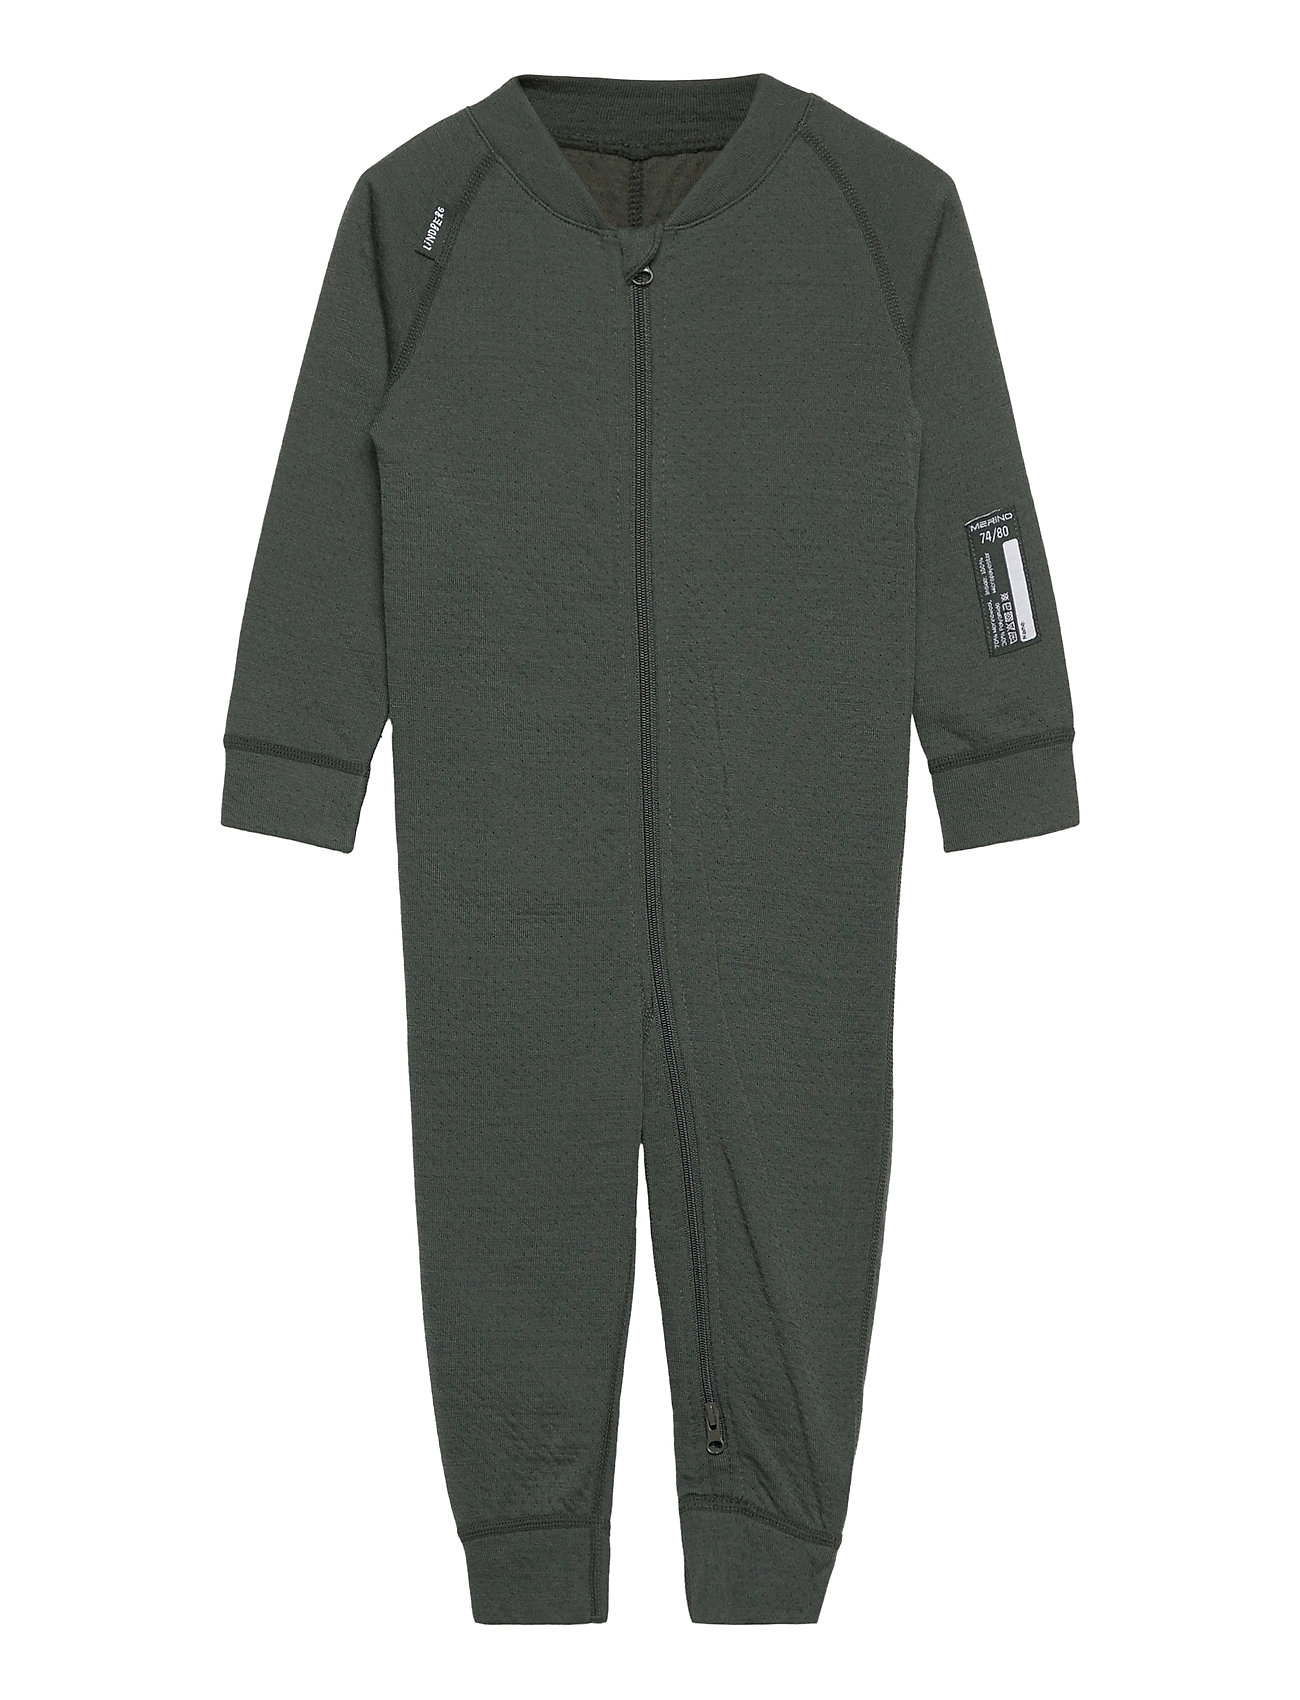 Image of Merino Overall Outerwear Wool Outerwear Grøn Lindberg Sweden (3452761905)